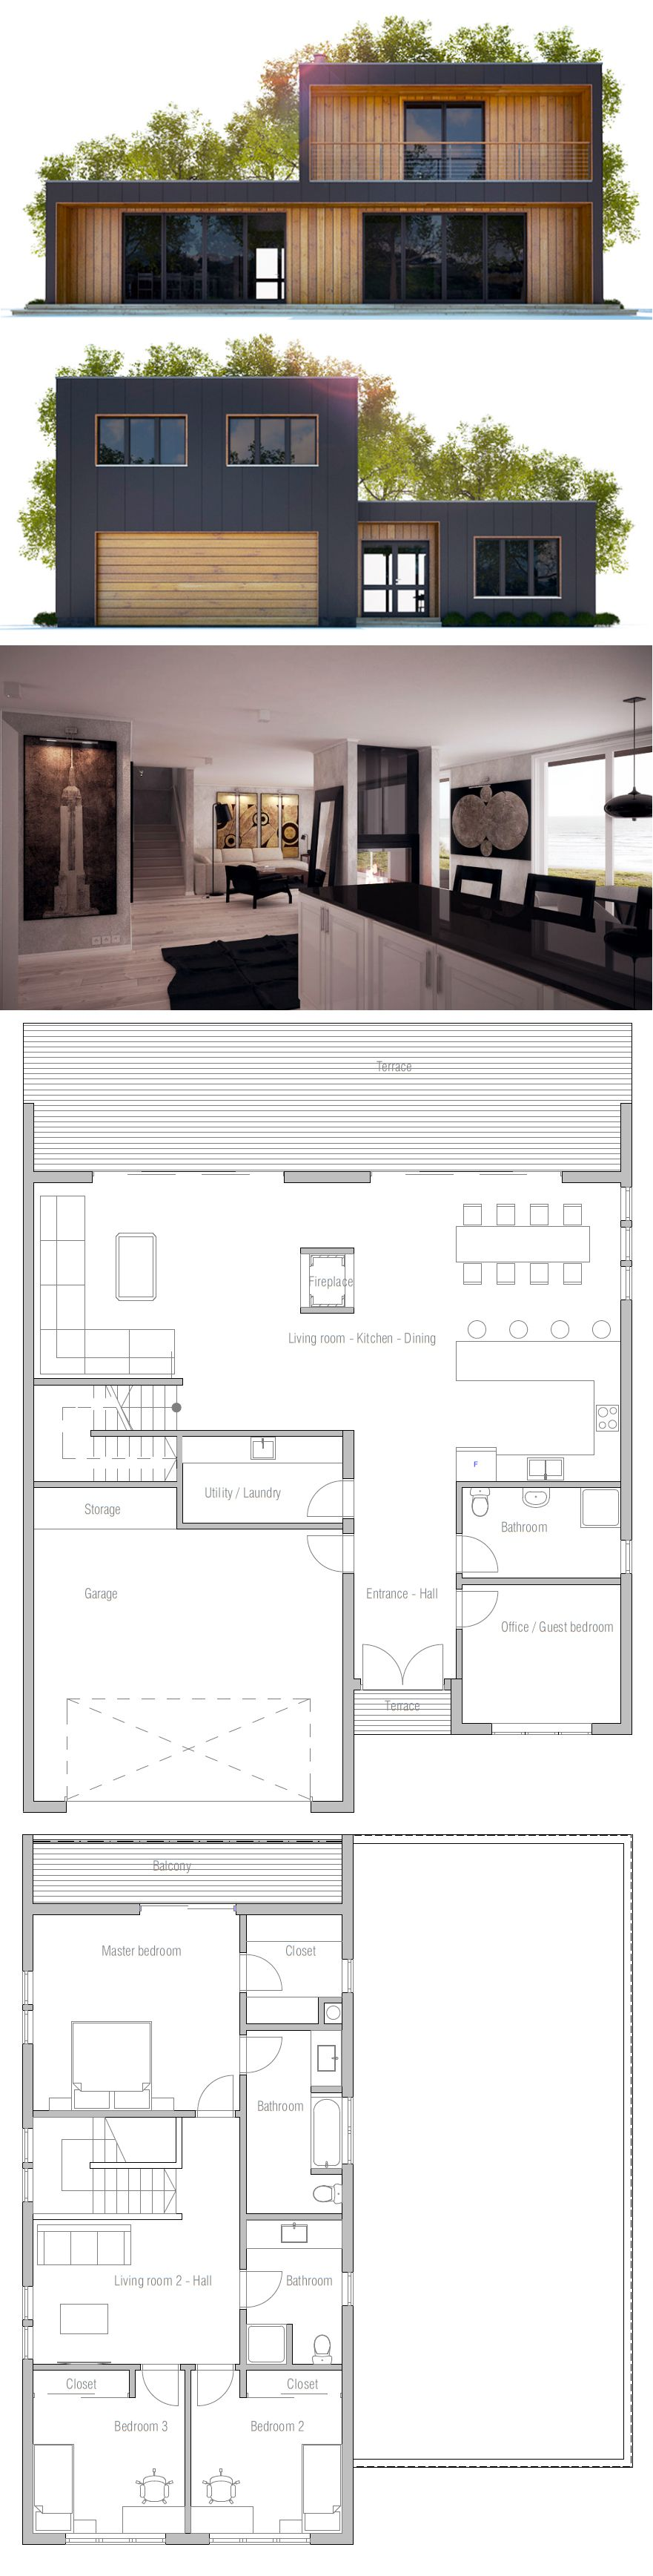 House Plan distribucin Planos Pinterest Modern house